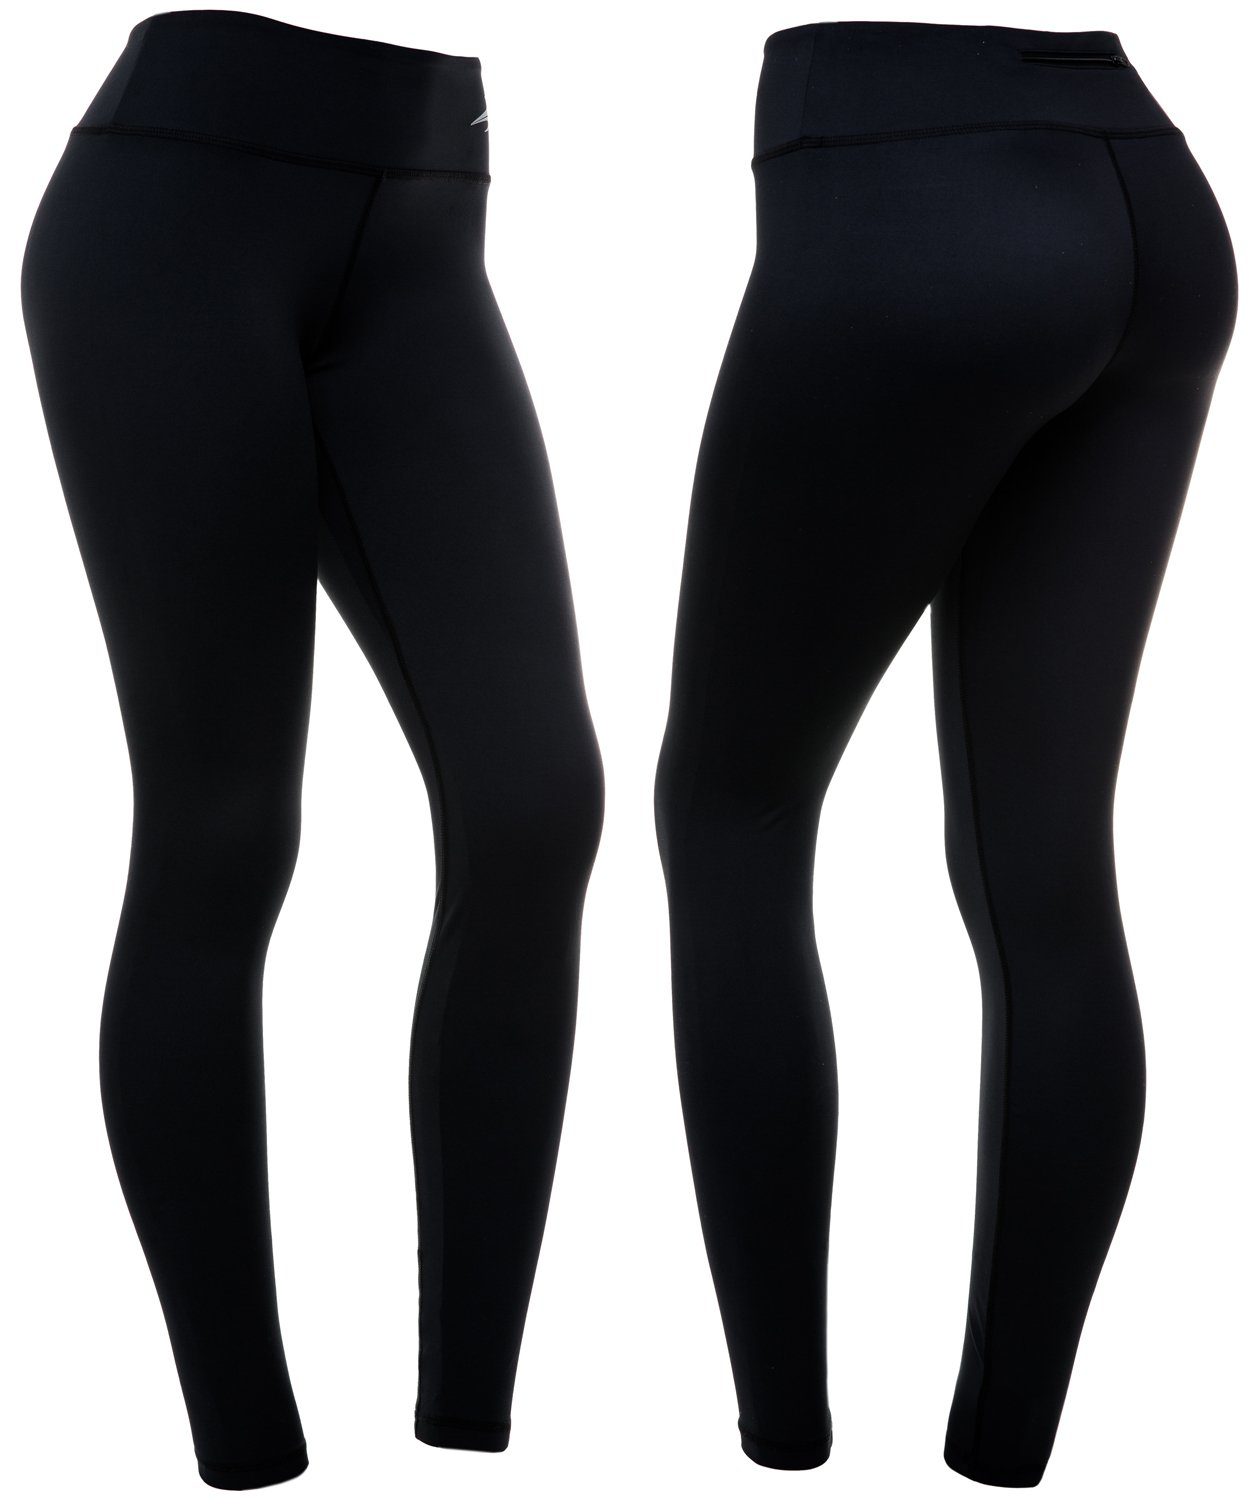 e3403ec5c504 Amazon.com : CompressionZ High Waisted Women's Leggings - Smart, Flexible  Compression for Yoga, Running, Fitness & Everyday Wear : Sports & Outdoors